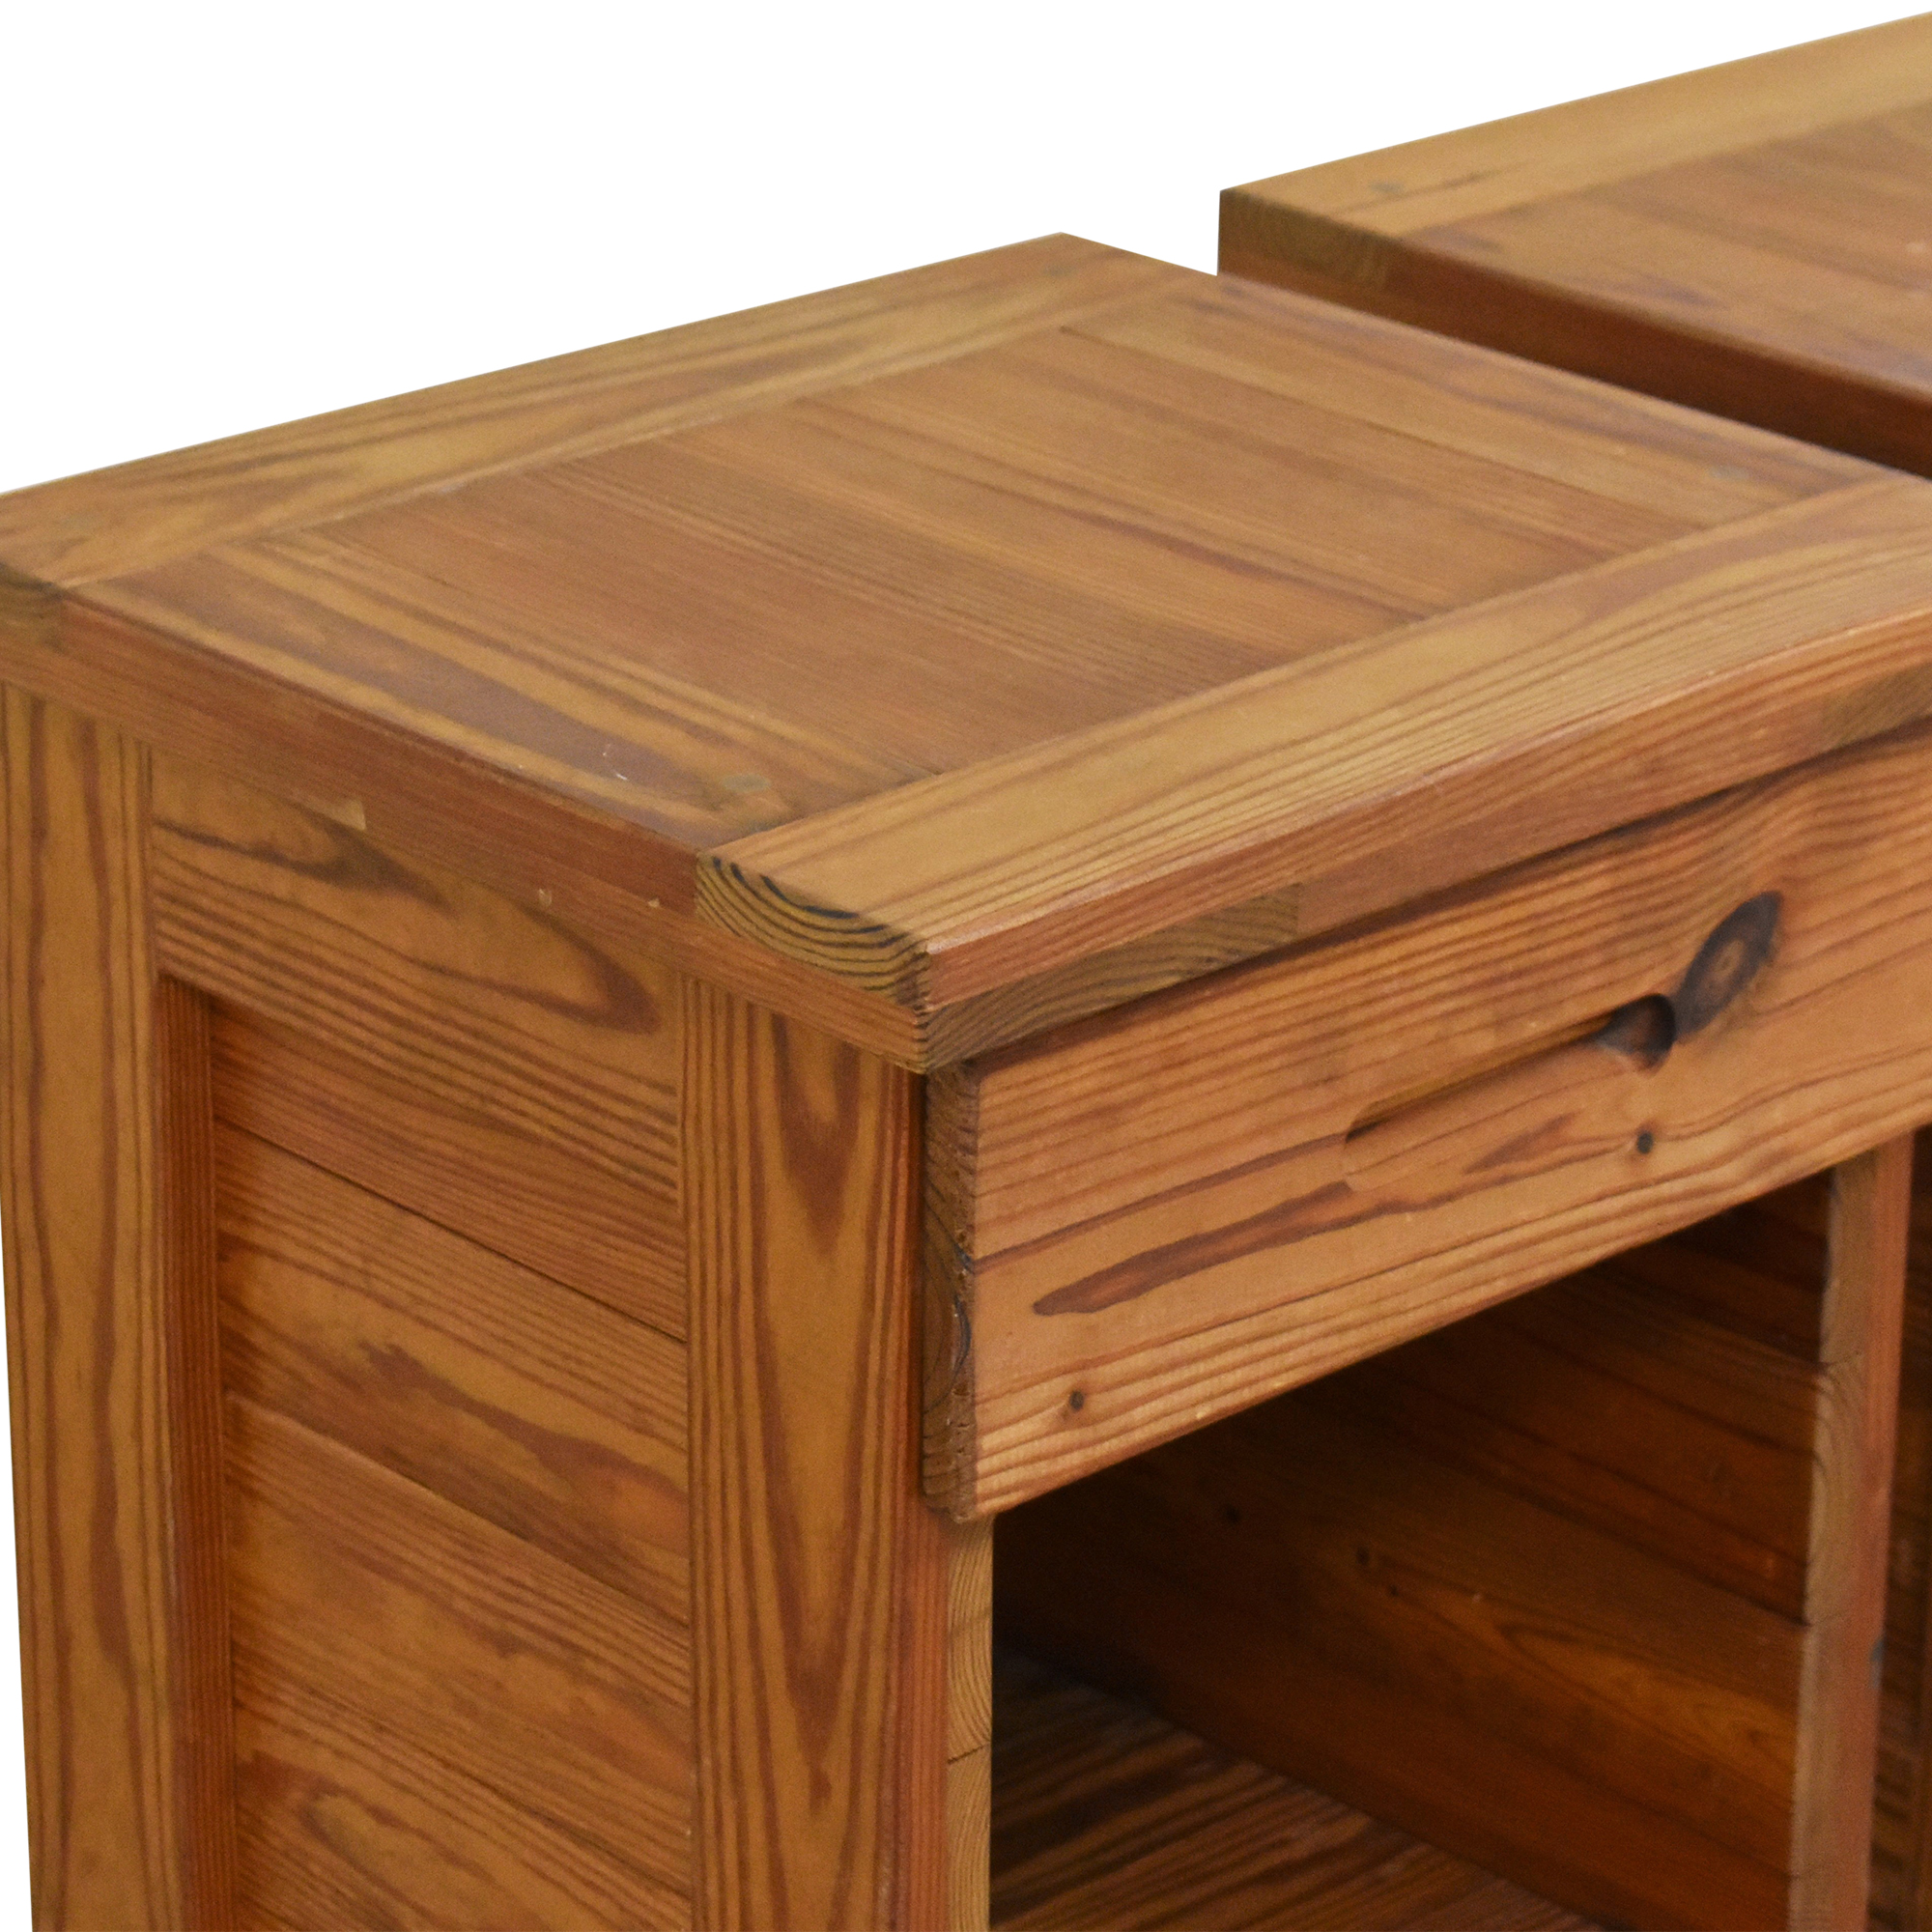 This End Up This End Up Classic Drawer Closed End Tables on sale